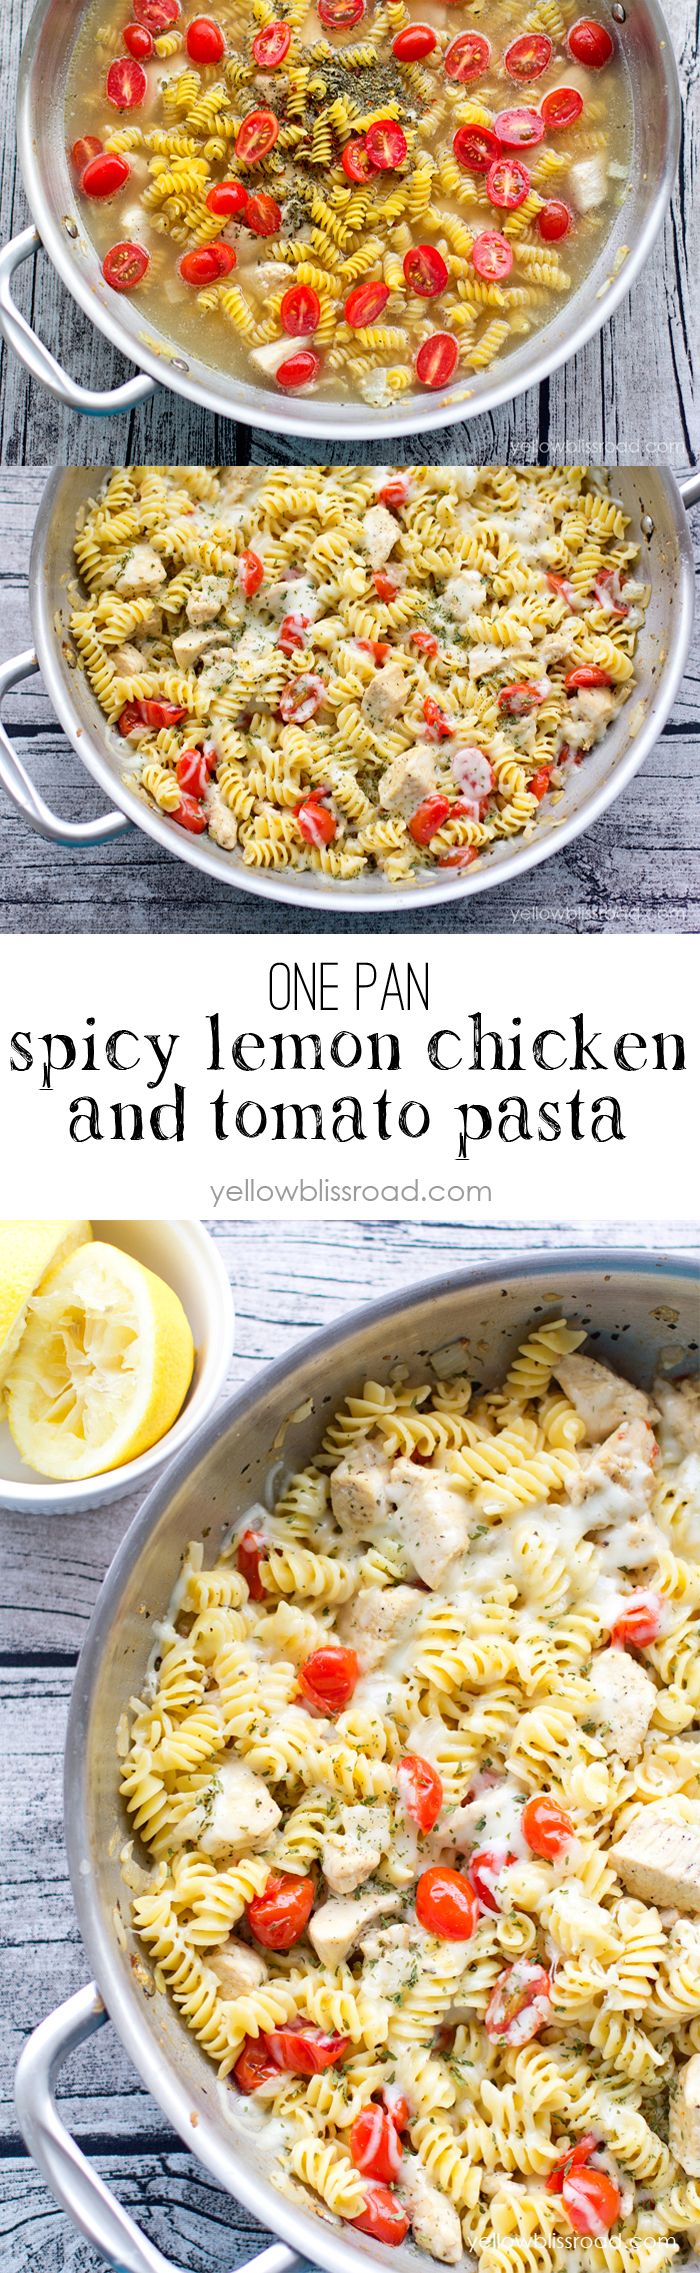 One Pan Spicy Lemon Chicken and Tomato Pasta - Cooks all in one pan and ready in under 20 minutes!